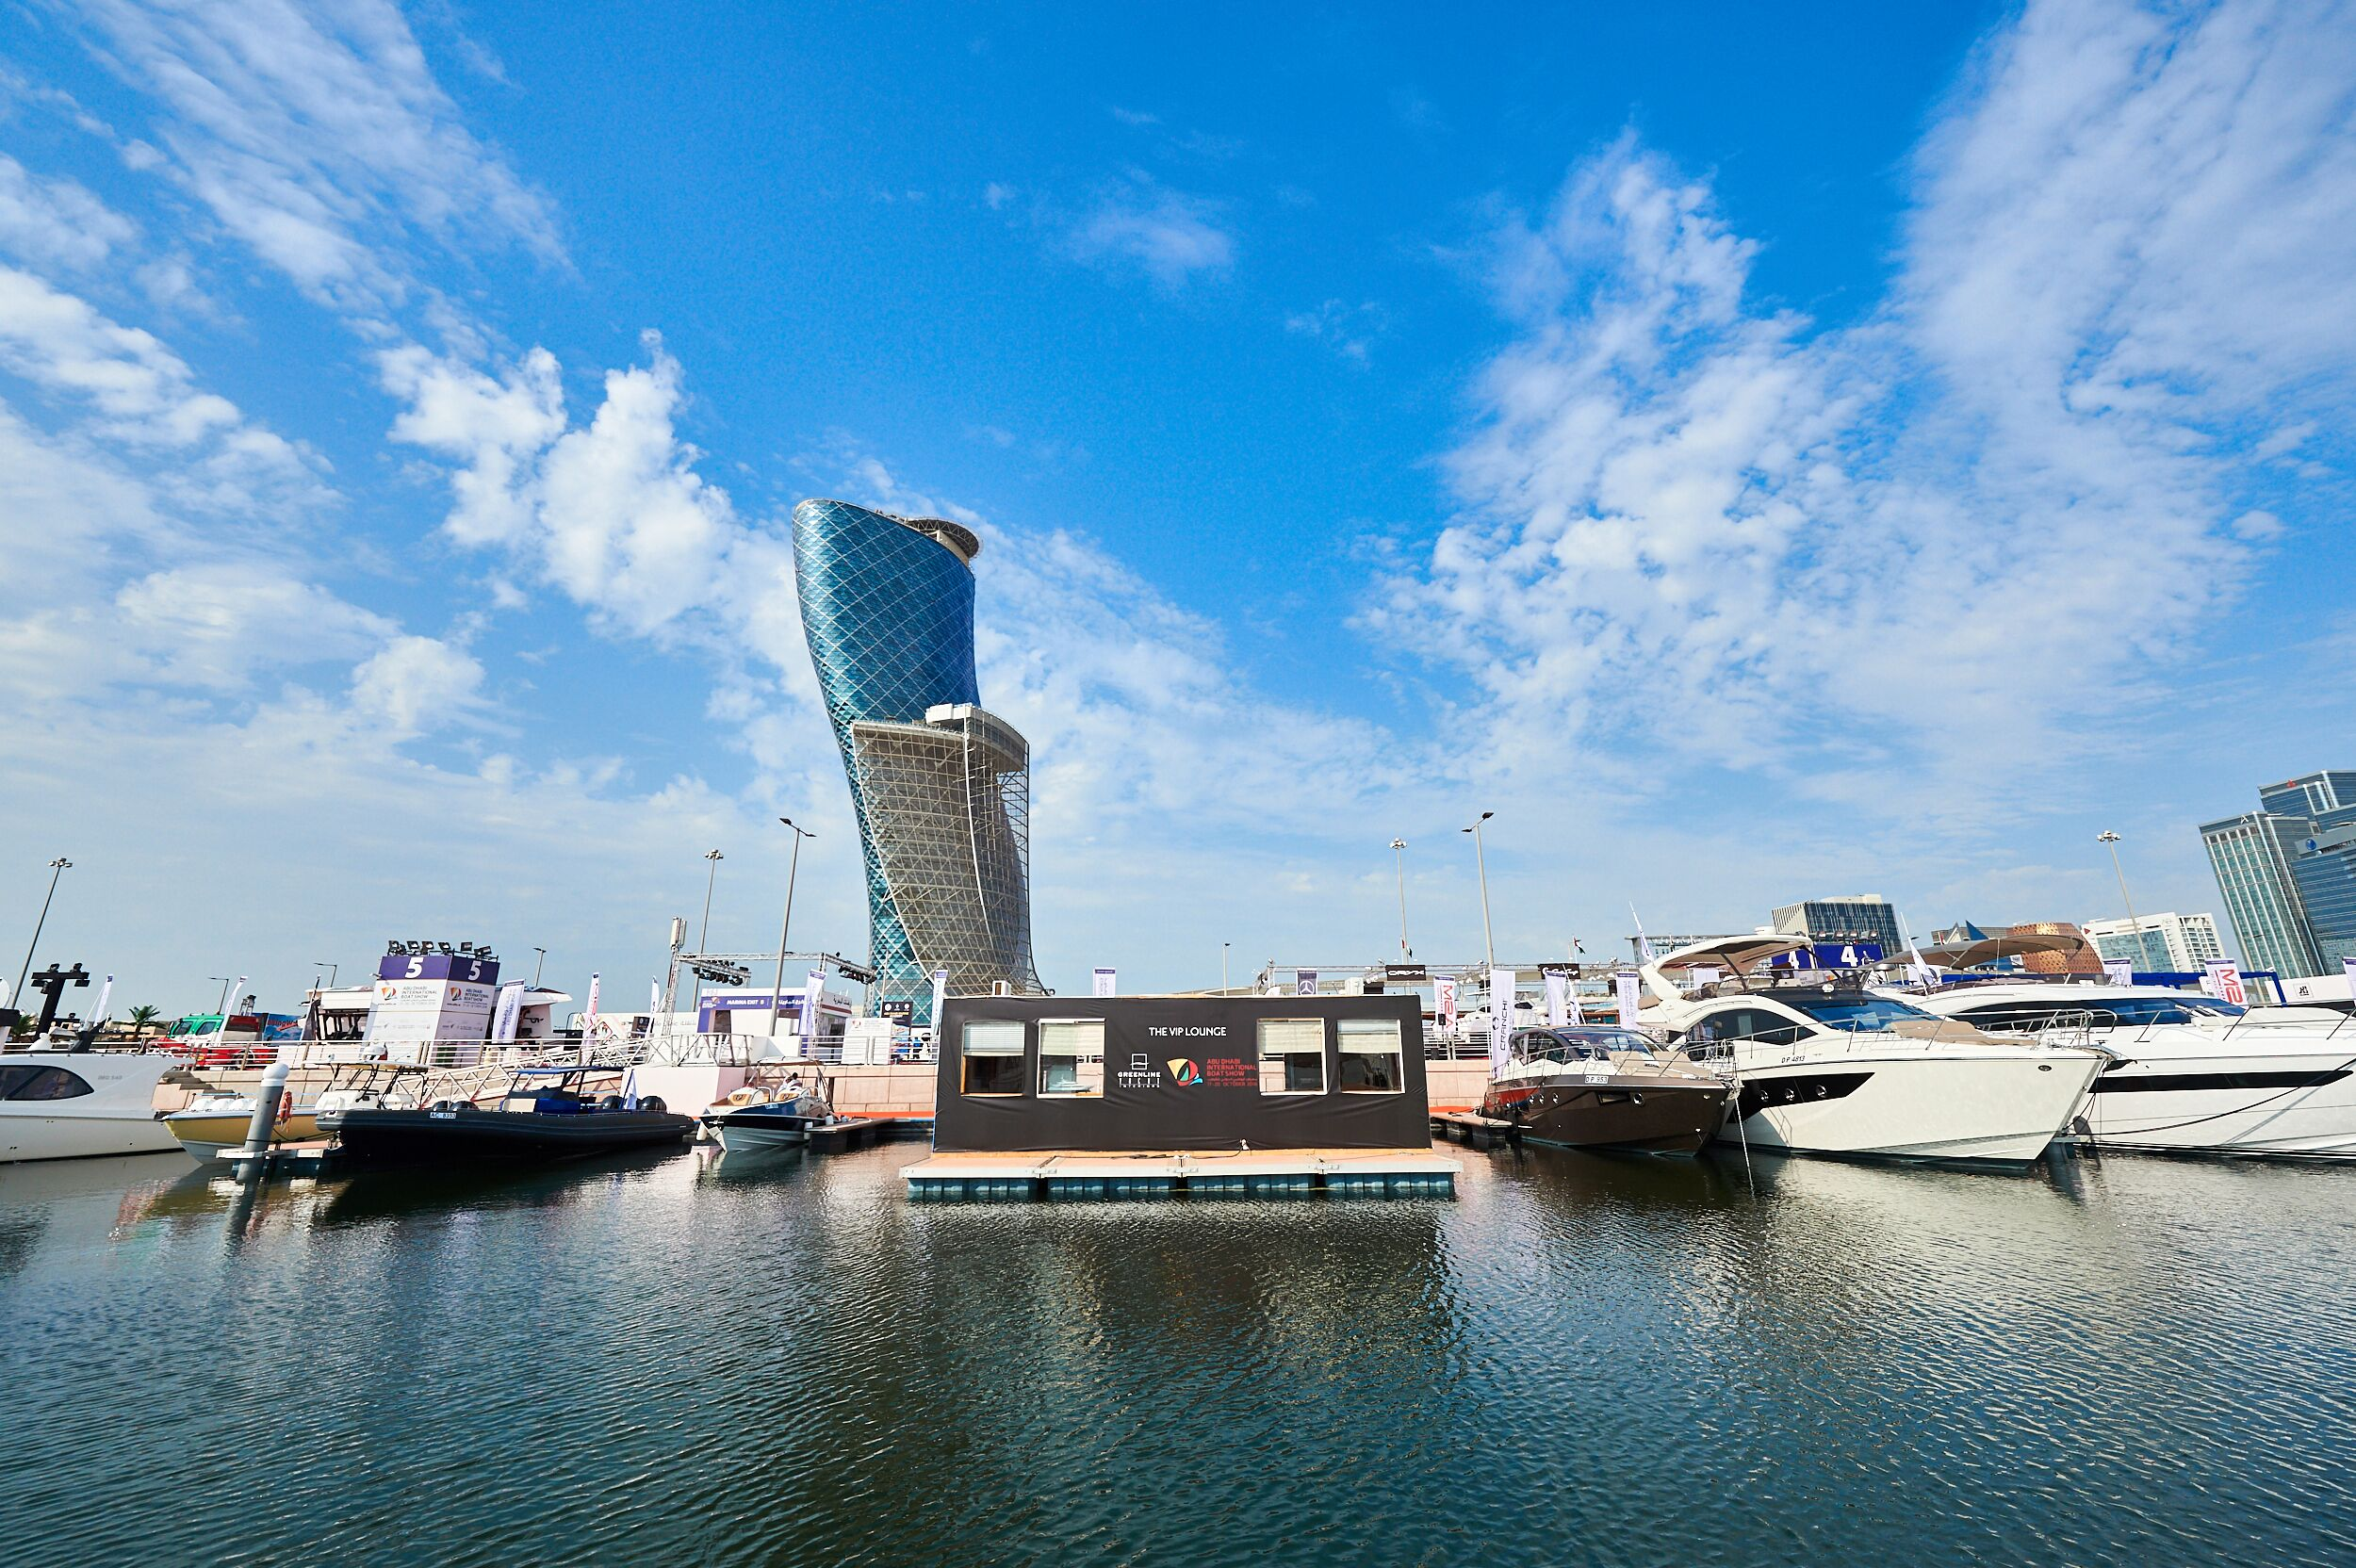 ADNEC Marina: A Premier Destination for Marine Events